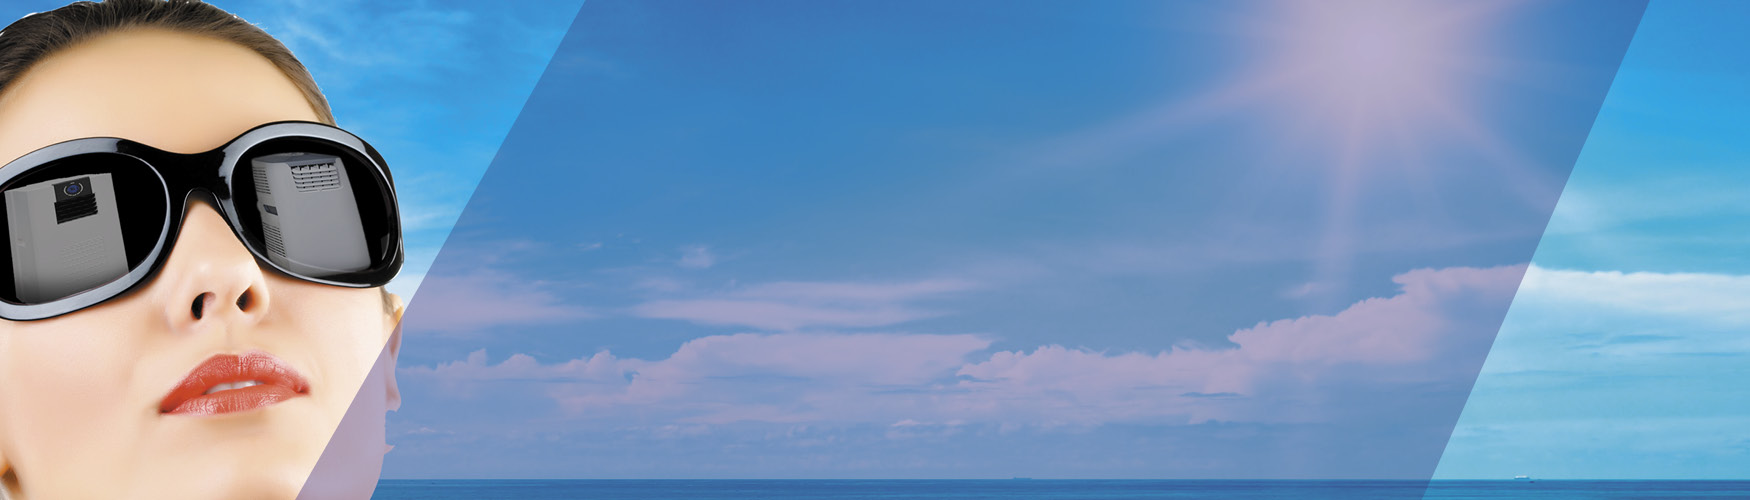 Large Plain Banners V2 - 1750x500px_Cooling.jpg